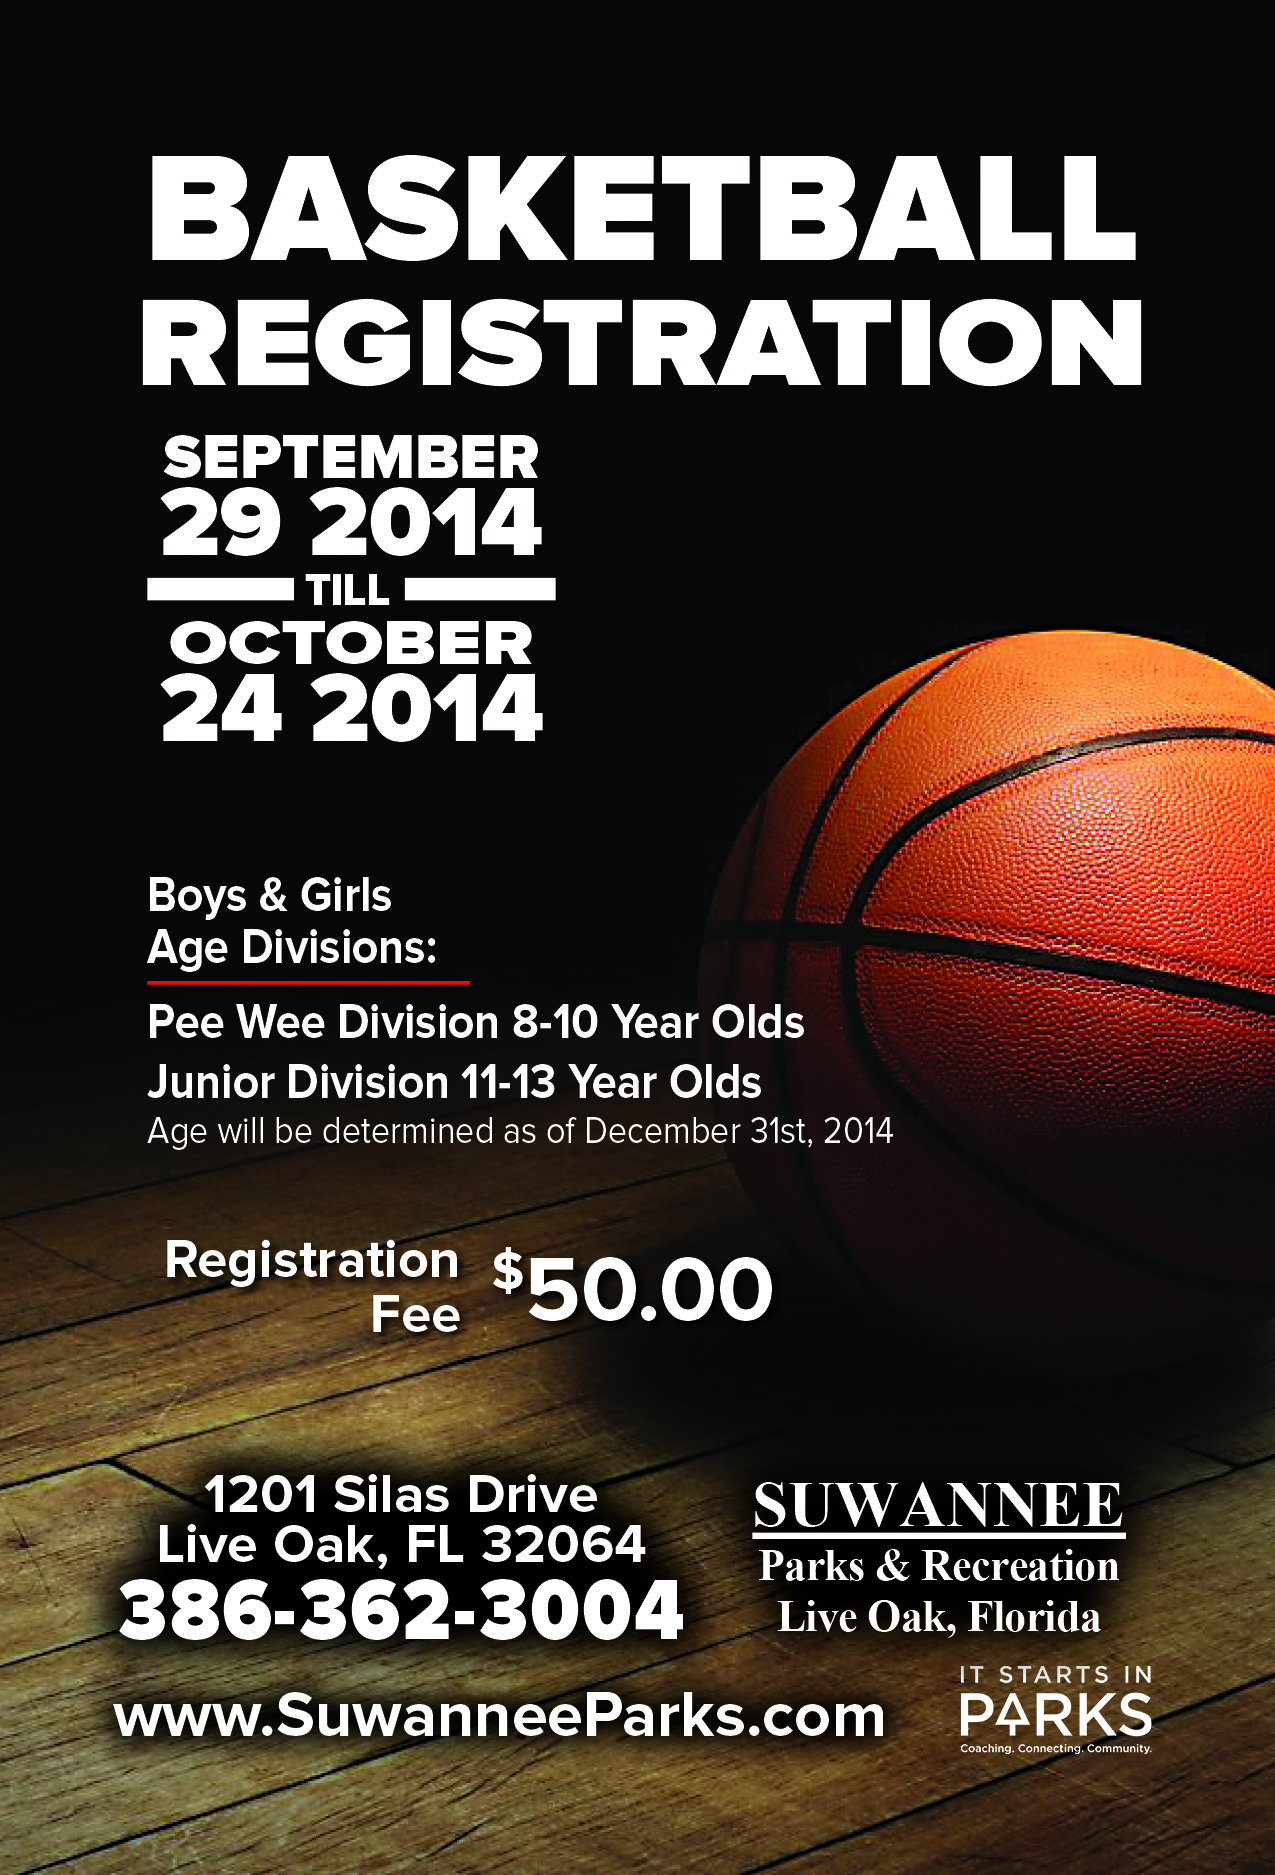 Basketball suwannee parks and recreation for Basketball tournament program template